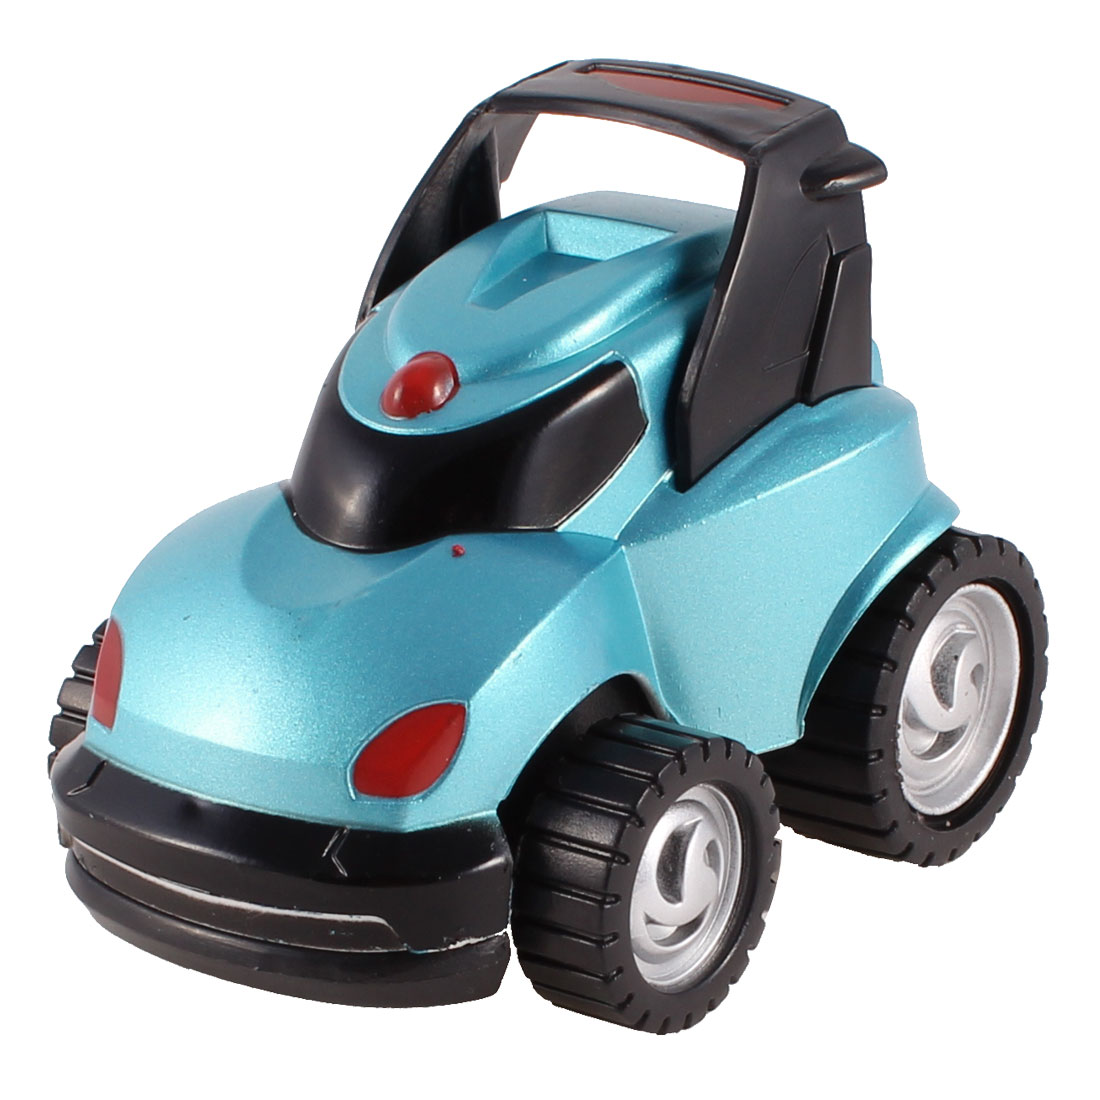 Kids Playing Colorful Plastic Cartoon Car Toy Model Gift